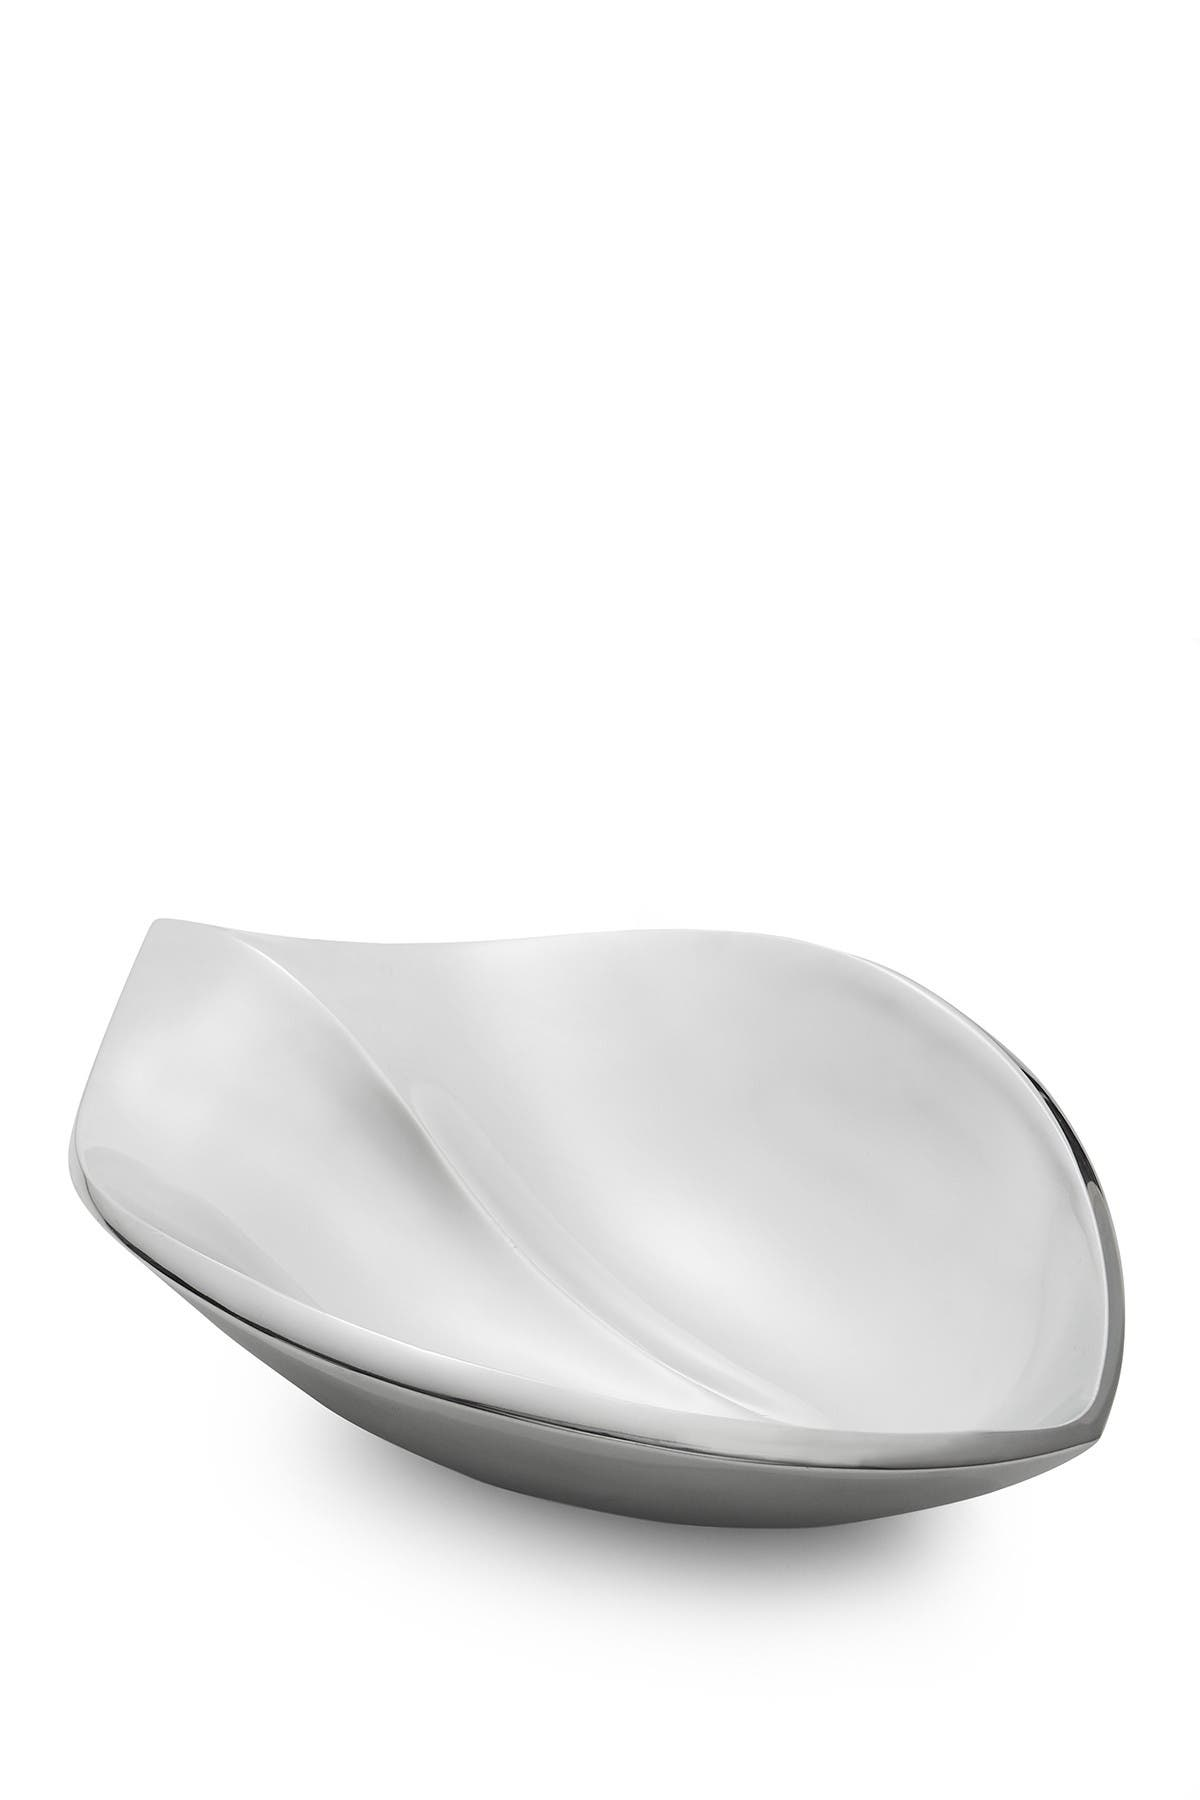 "Image of Nambe 14"" Bowl"